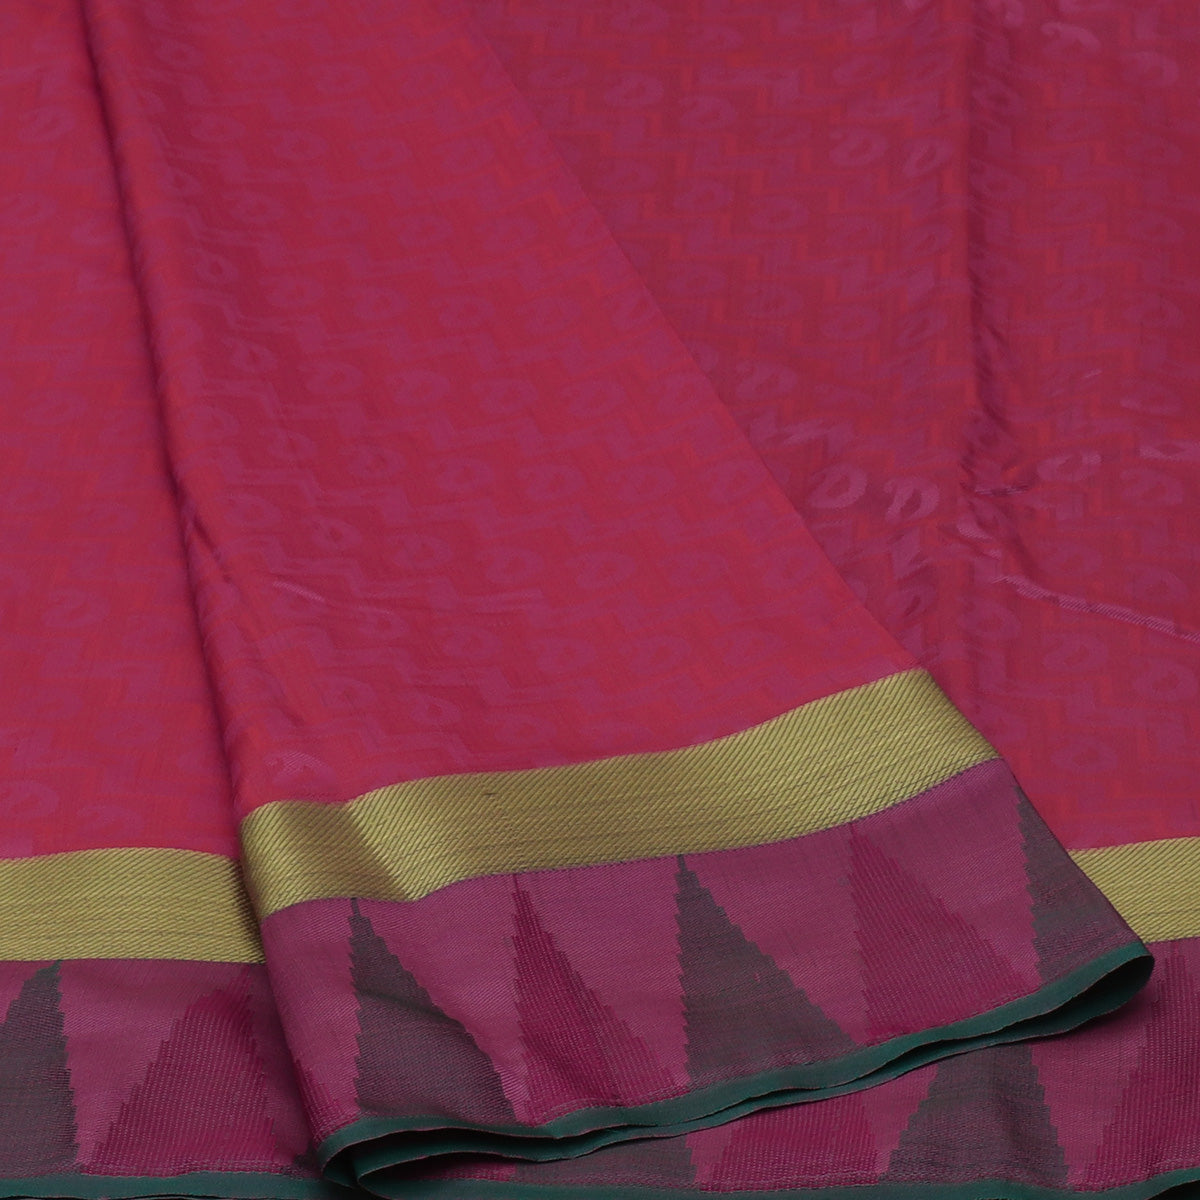 Art Silk Saree Light Pink and Green dual shade with Simple Zari and Temple border